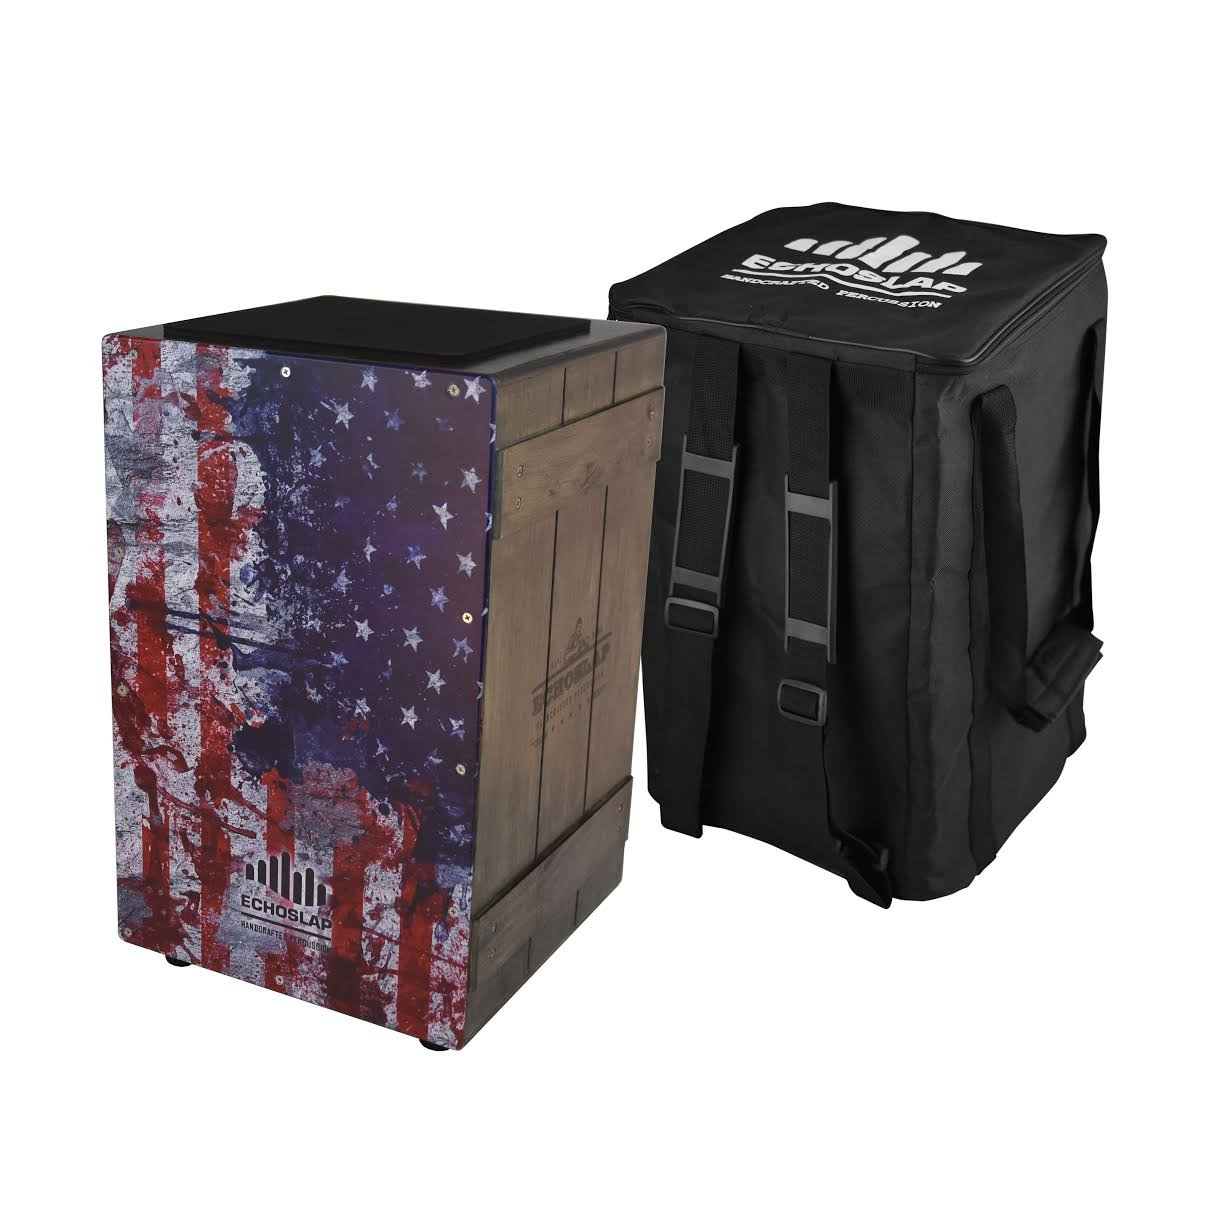 Echoslap Vintage Crate Cajon -Vintage American Flag, Hand Crafted, Siam Oak Body, Plus Gig Back CNZ Audio VC201-US-GIGBAG